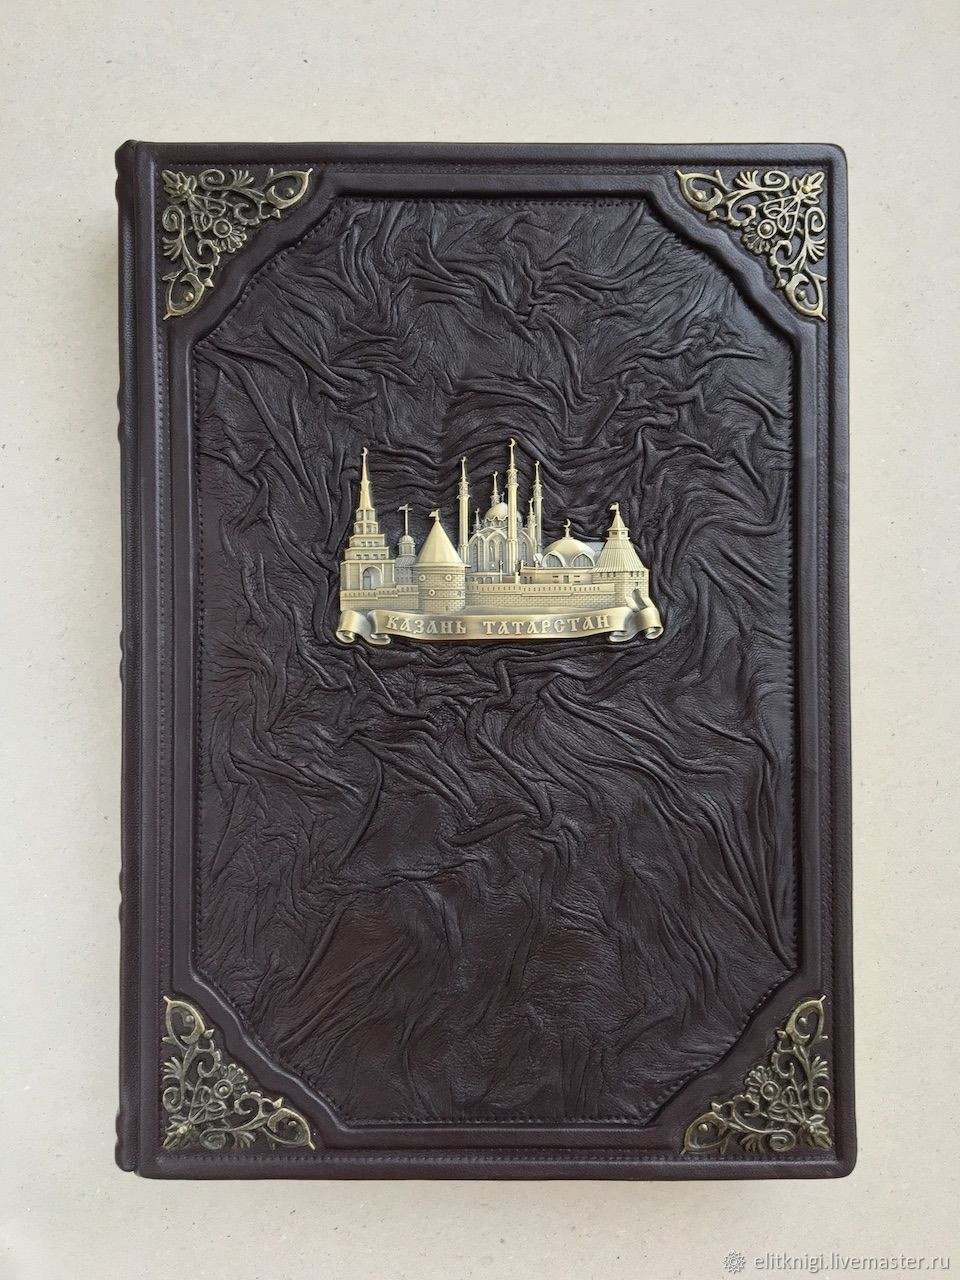 The book is about Kazan. Tatarstan (leather gift book), Gift books, Moscow,  Фото №1